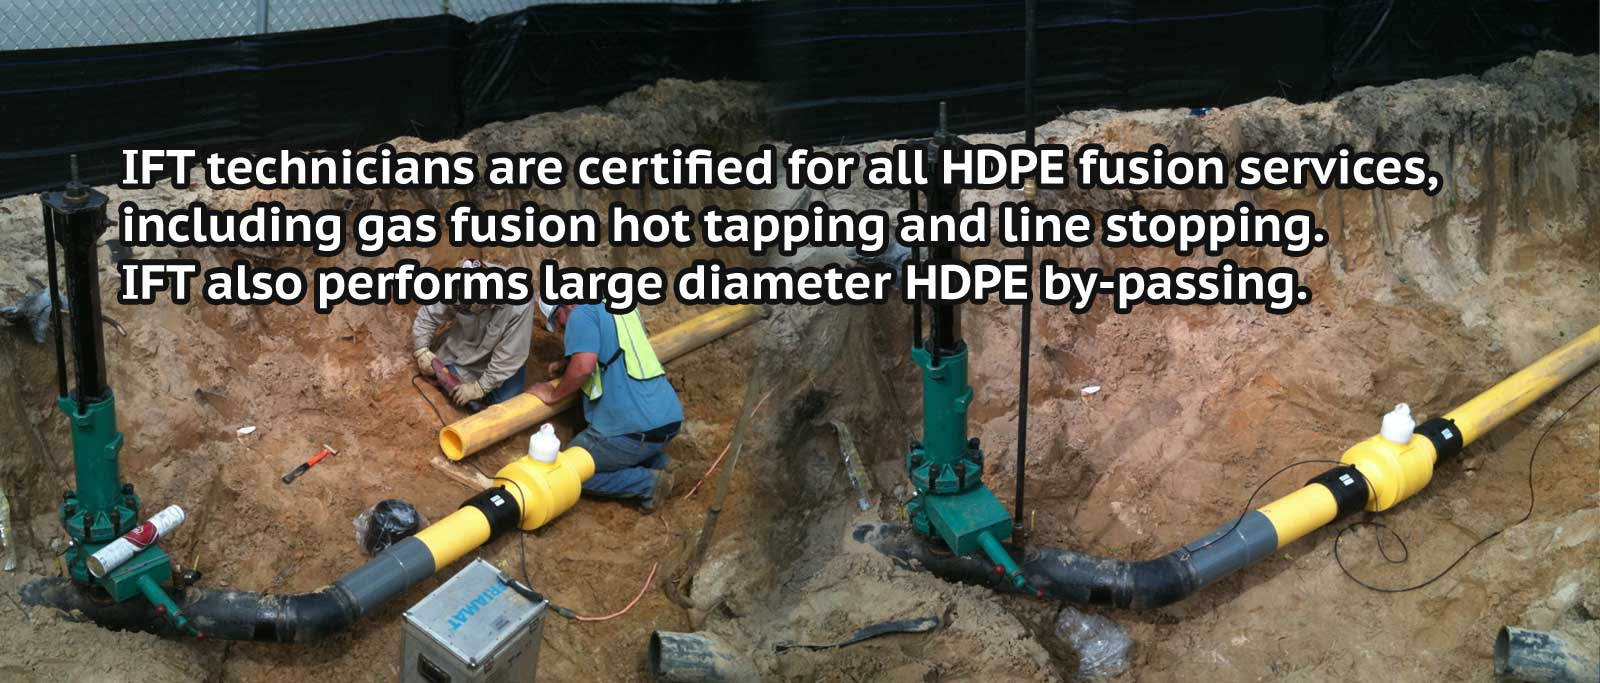 Certified for all HDPE fusion services,  including gas fusion hot tapping, line stopping and can perform large diameter by-passing.